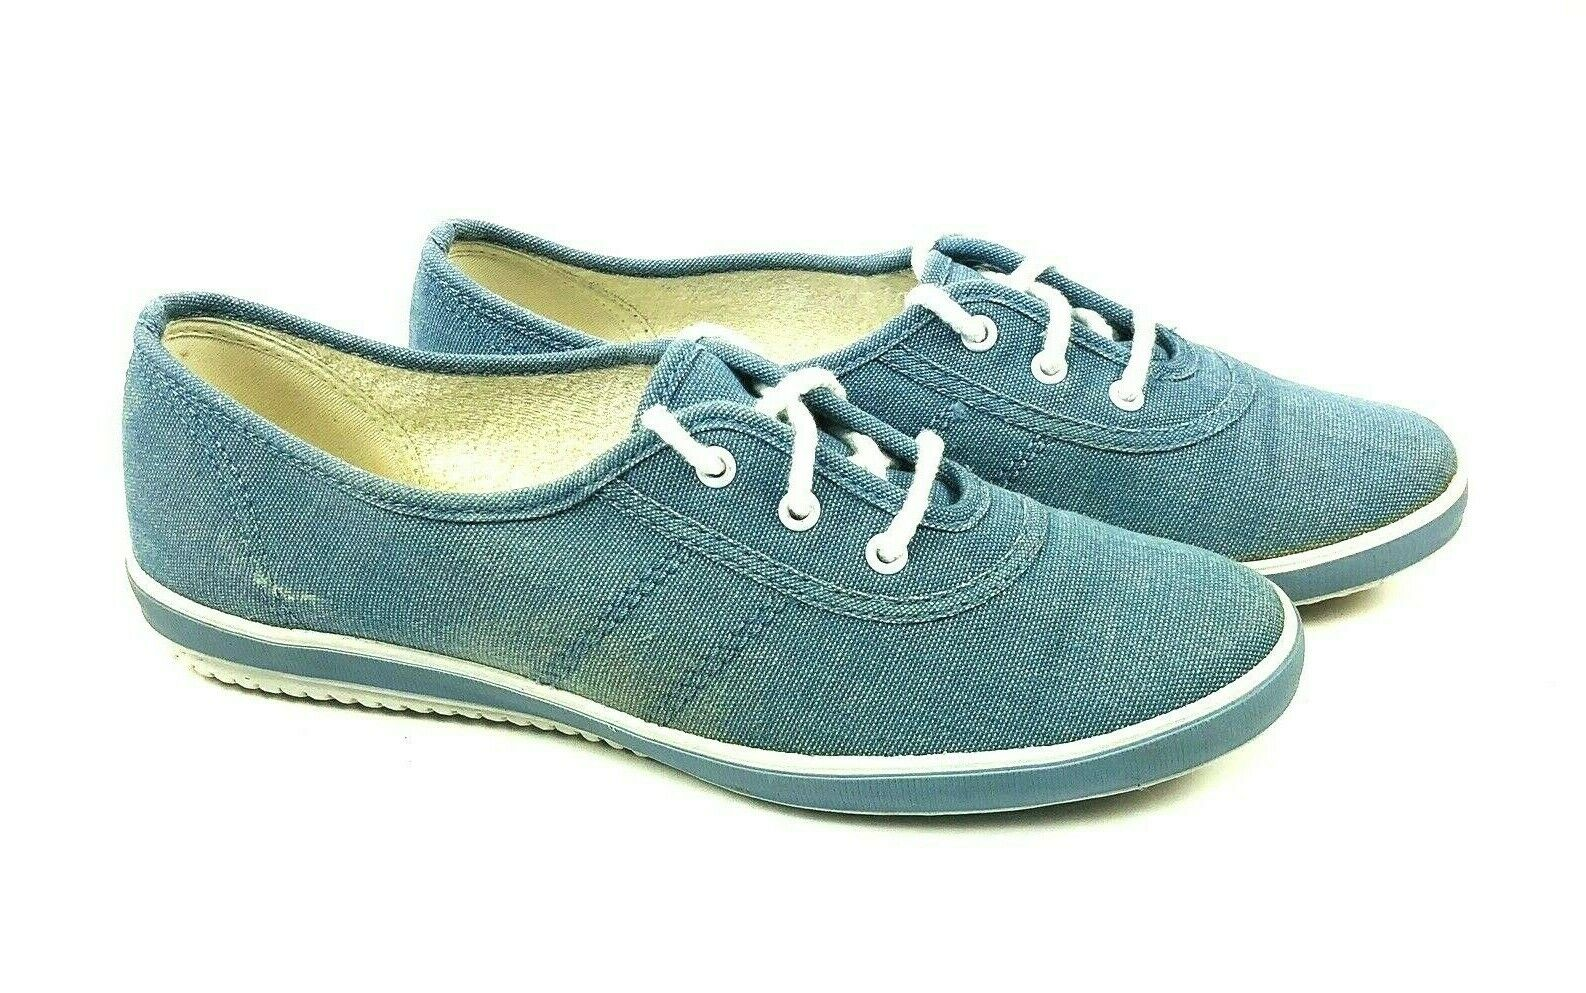 Keds Grasshoppers Womens shoes Size 7.5 M bluee Canvas Sneakers Lace Up